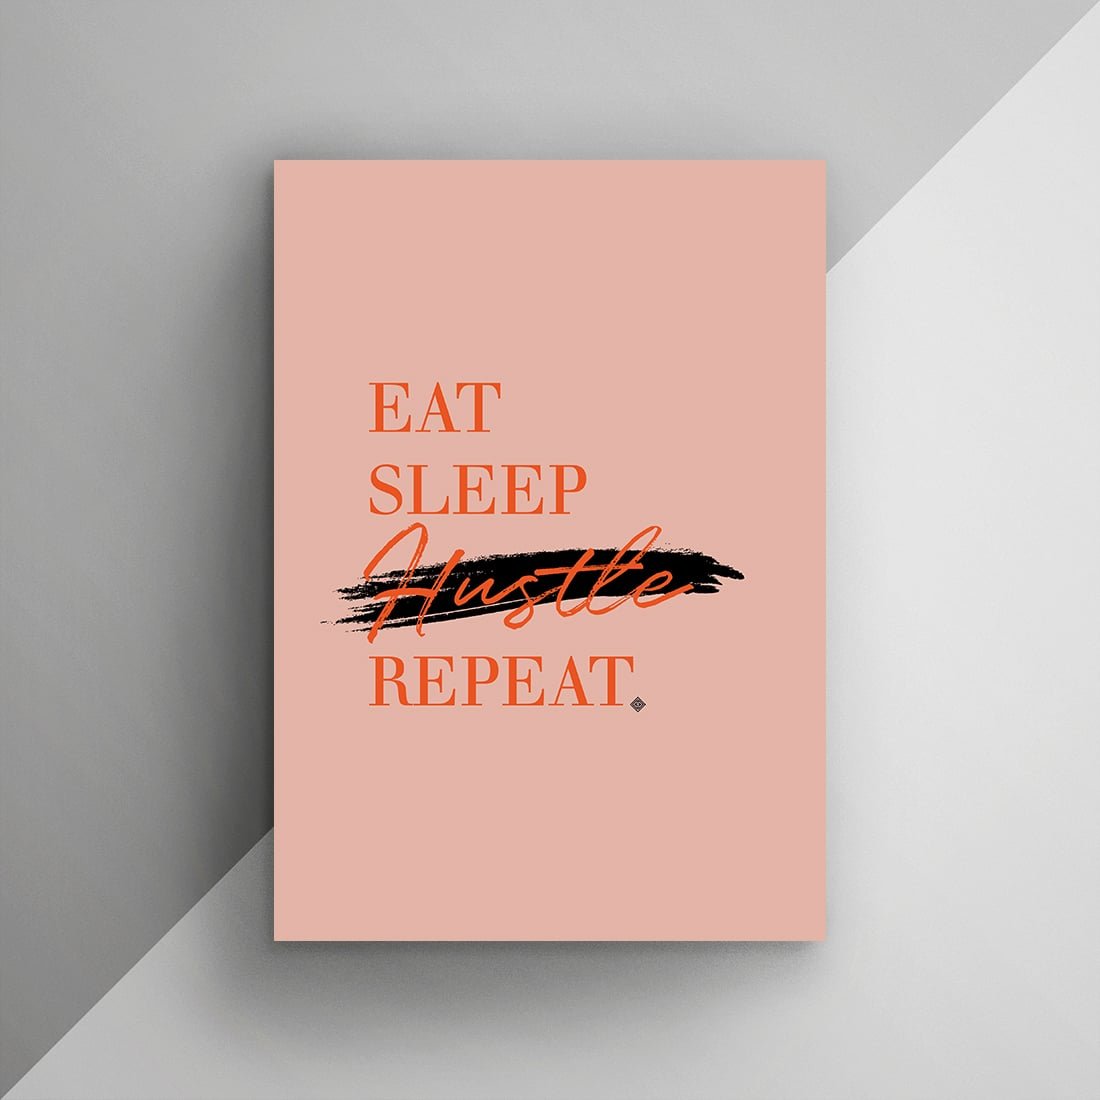 Download this Eat Sleep Hustle Repeat Free Printable as part of my Freebie Friday series. Print & hang this inspiring art in your space!